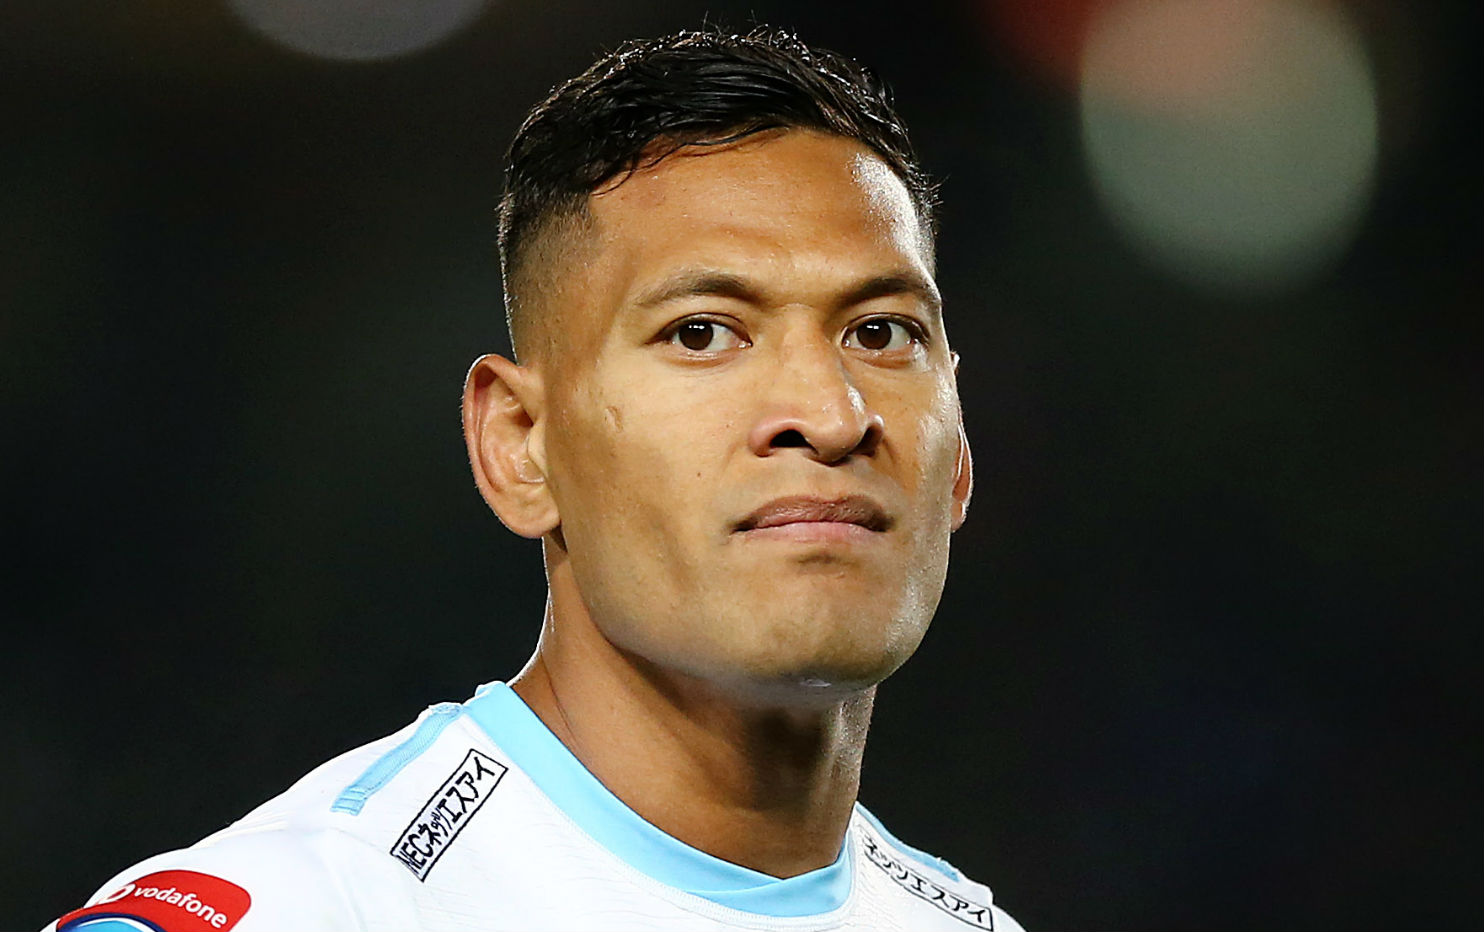 Folau a victim of 'continuing campaign of discrimination' after GoFundMe page shut down